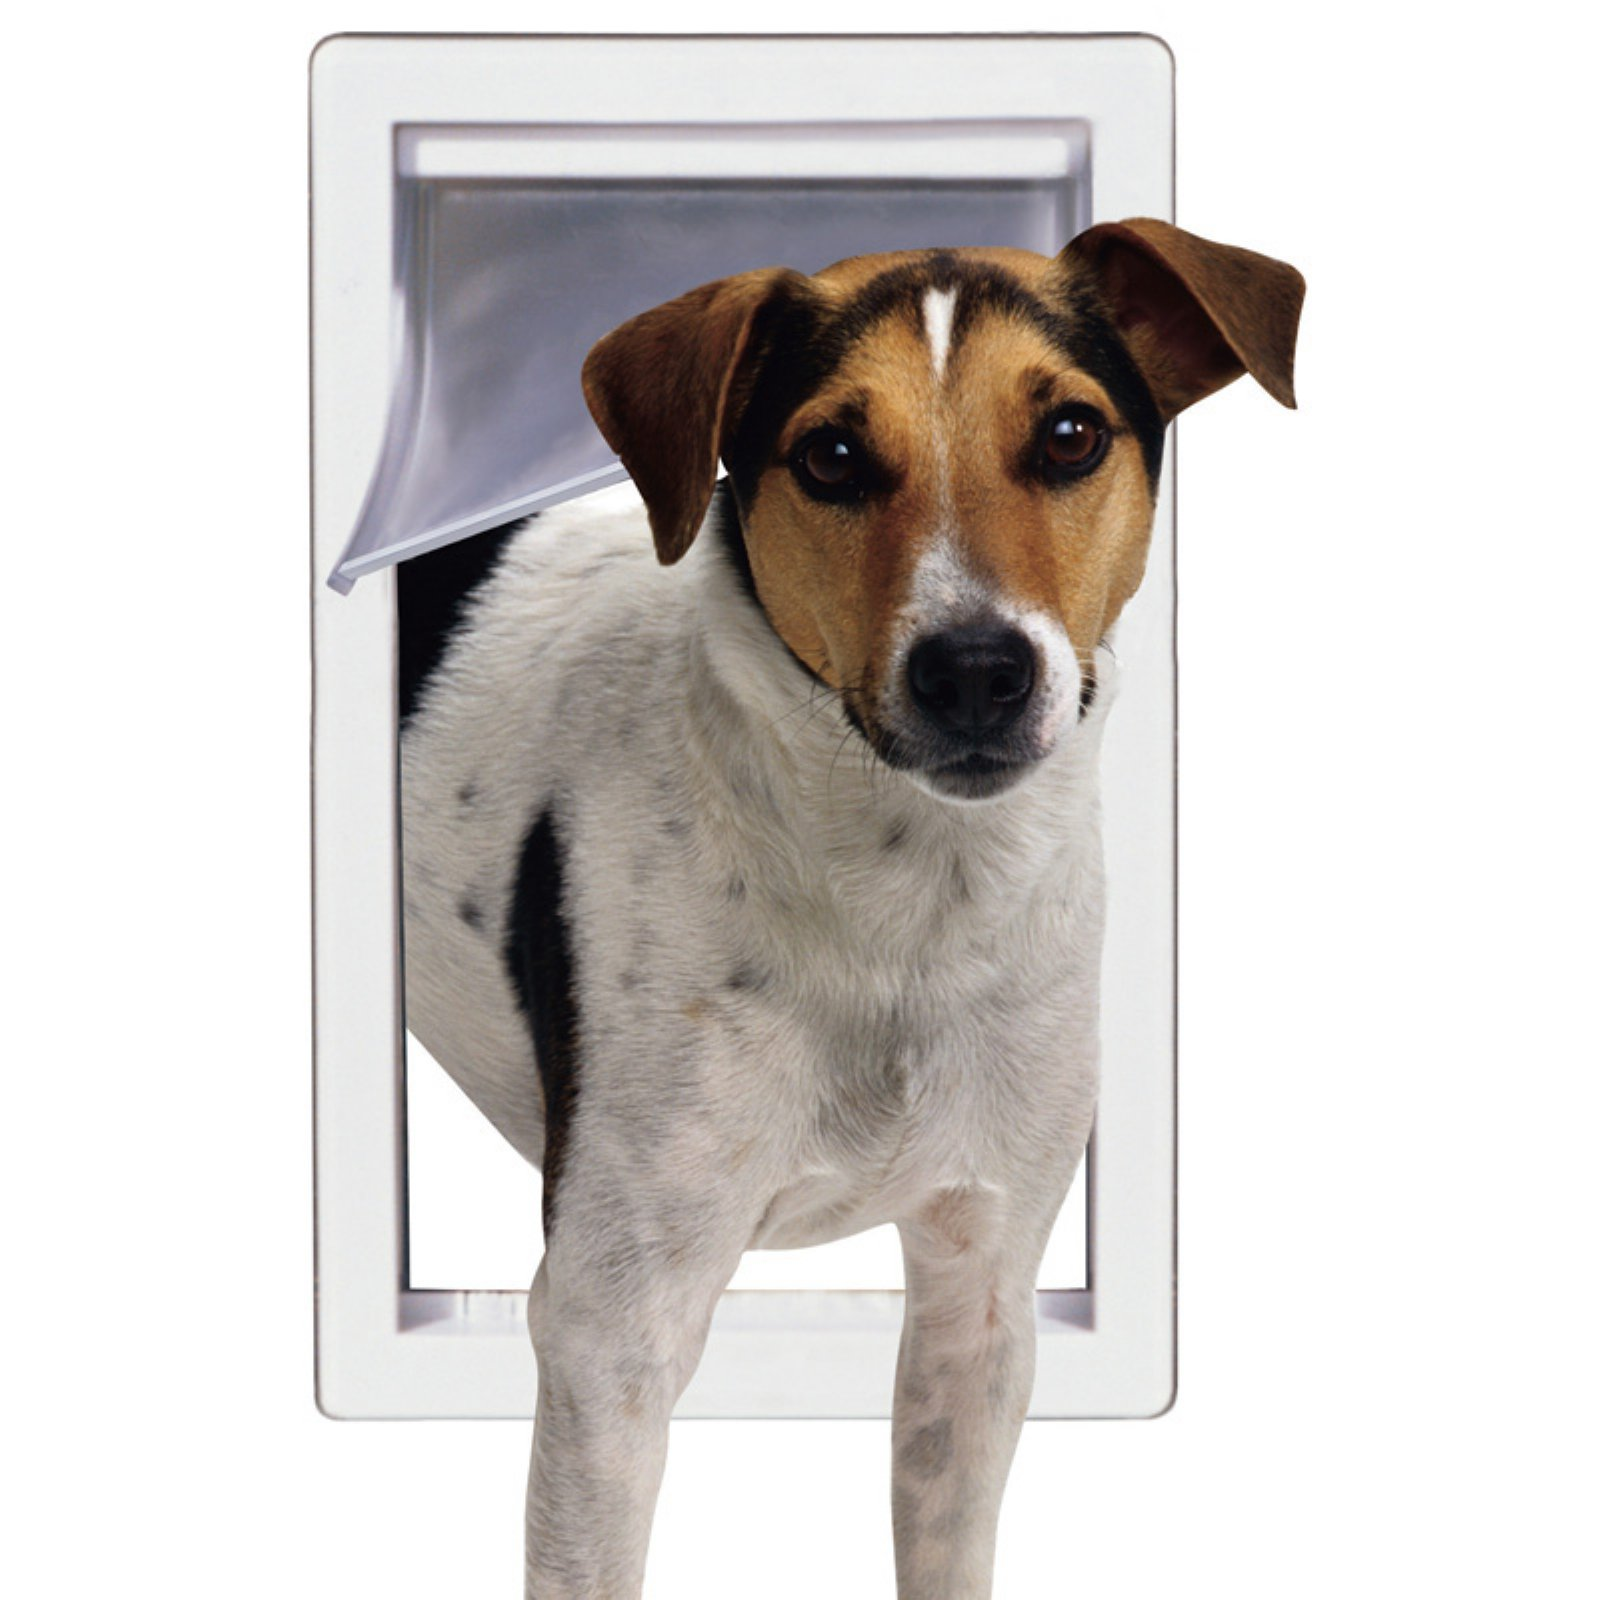 Ideal Storm Door Dog Door